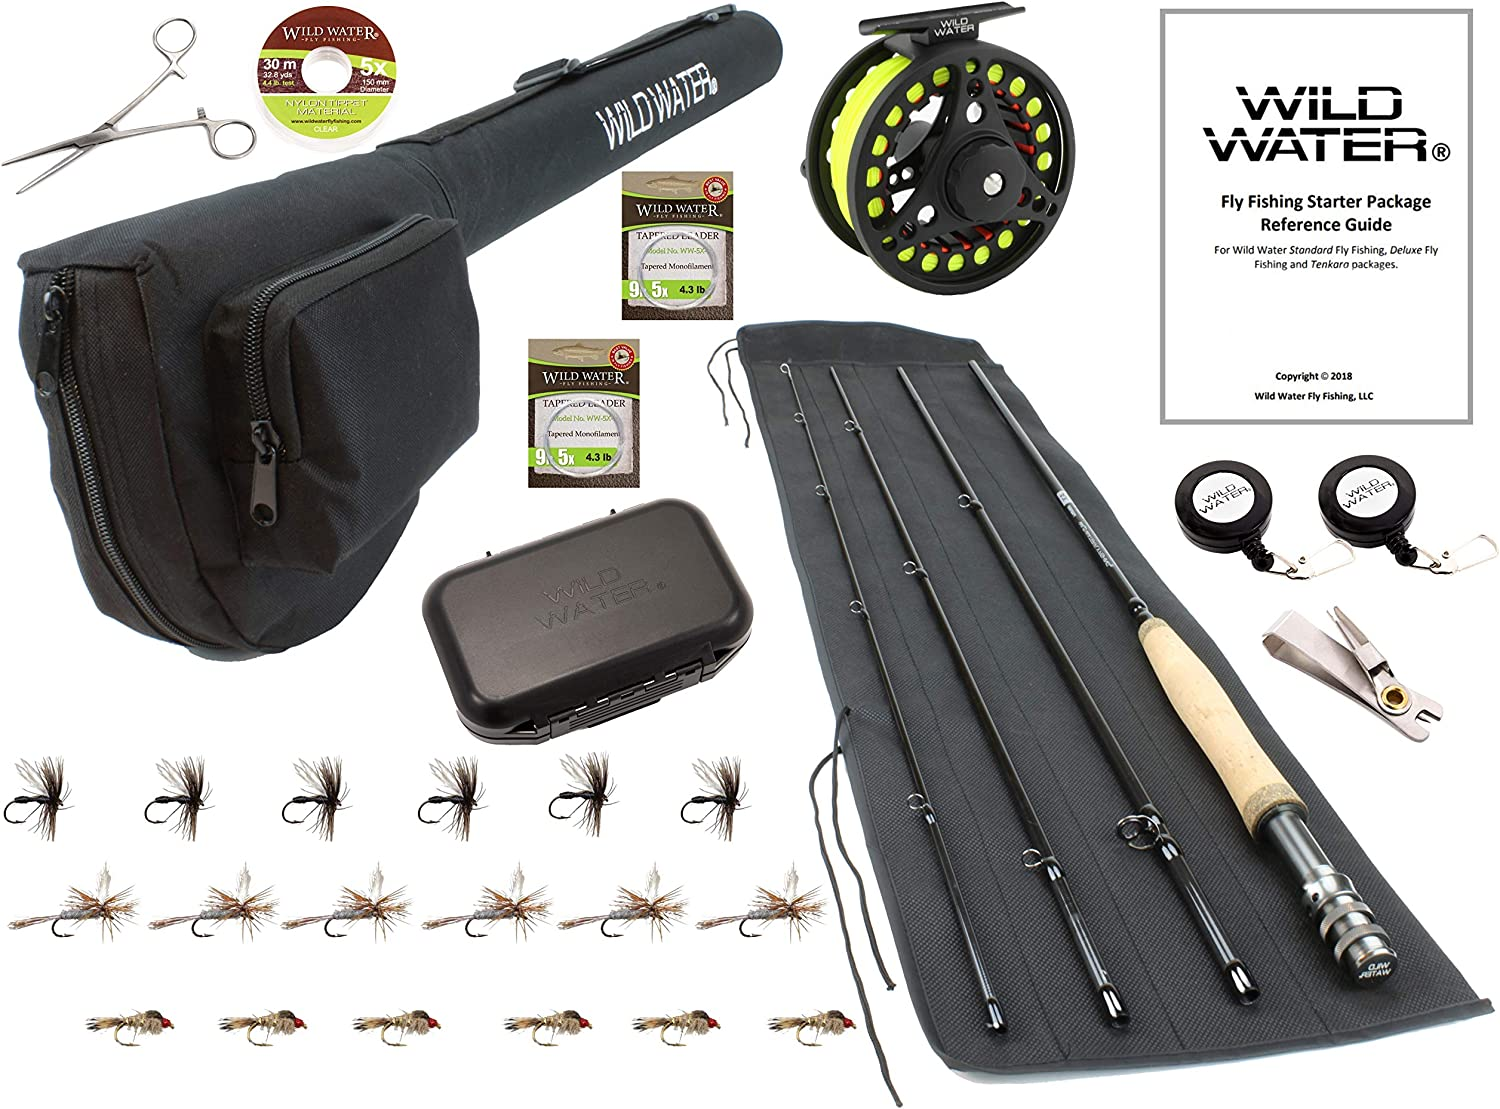 Wild Water Fly Fishing 9 Foot, 4-Piece, 5/6 Weight Fly Rod Deluxe Complete Fly Fishing Rod and Reel Combo Starter Package